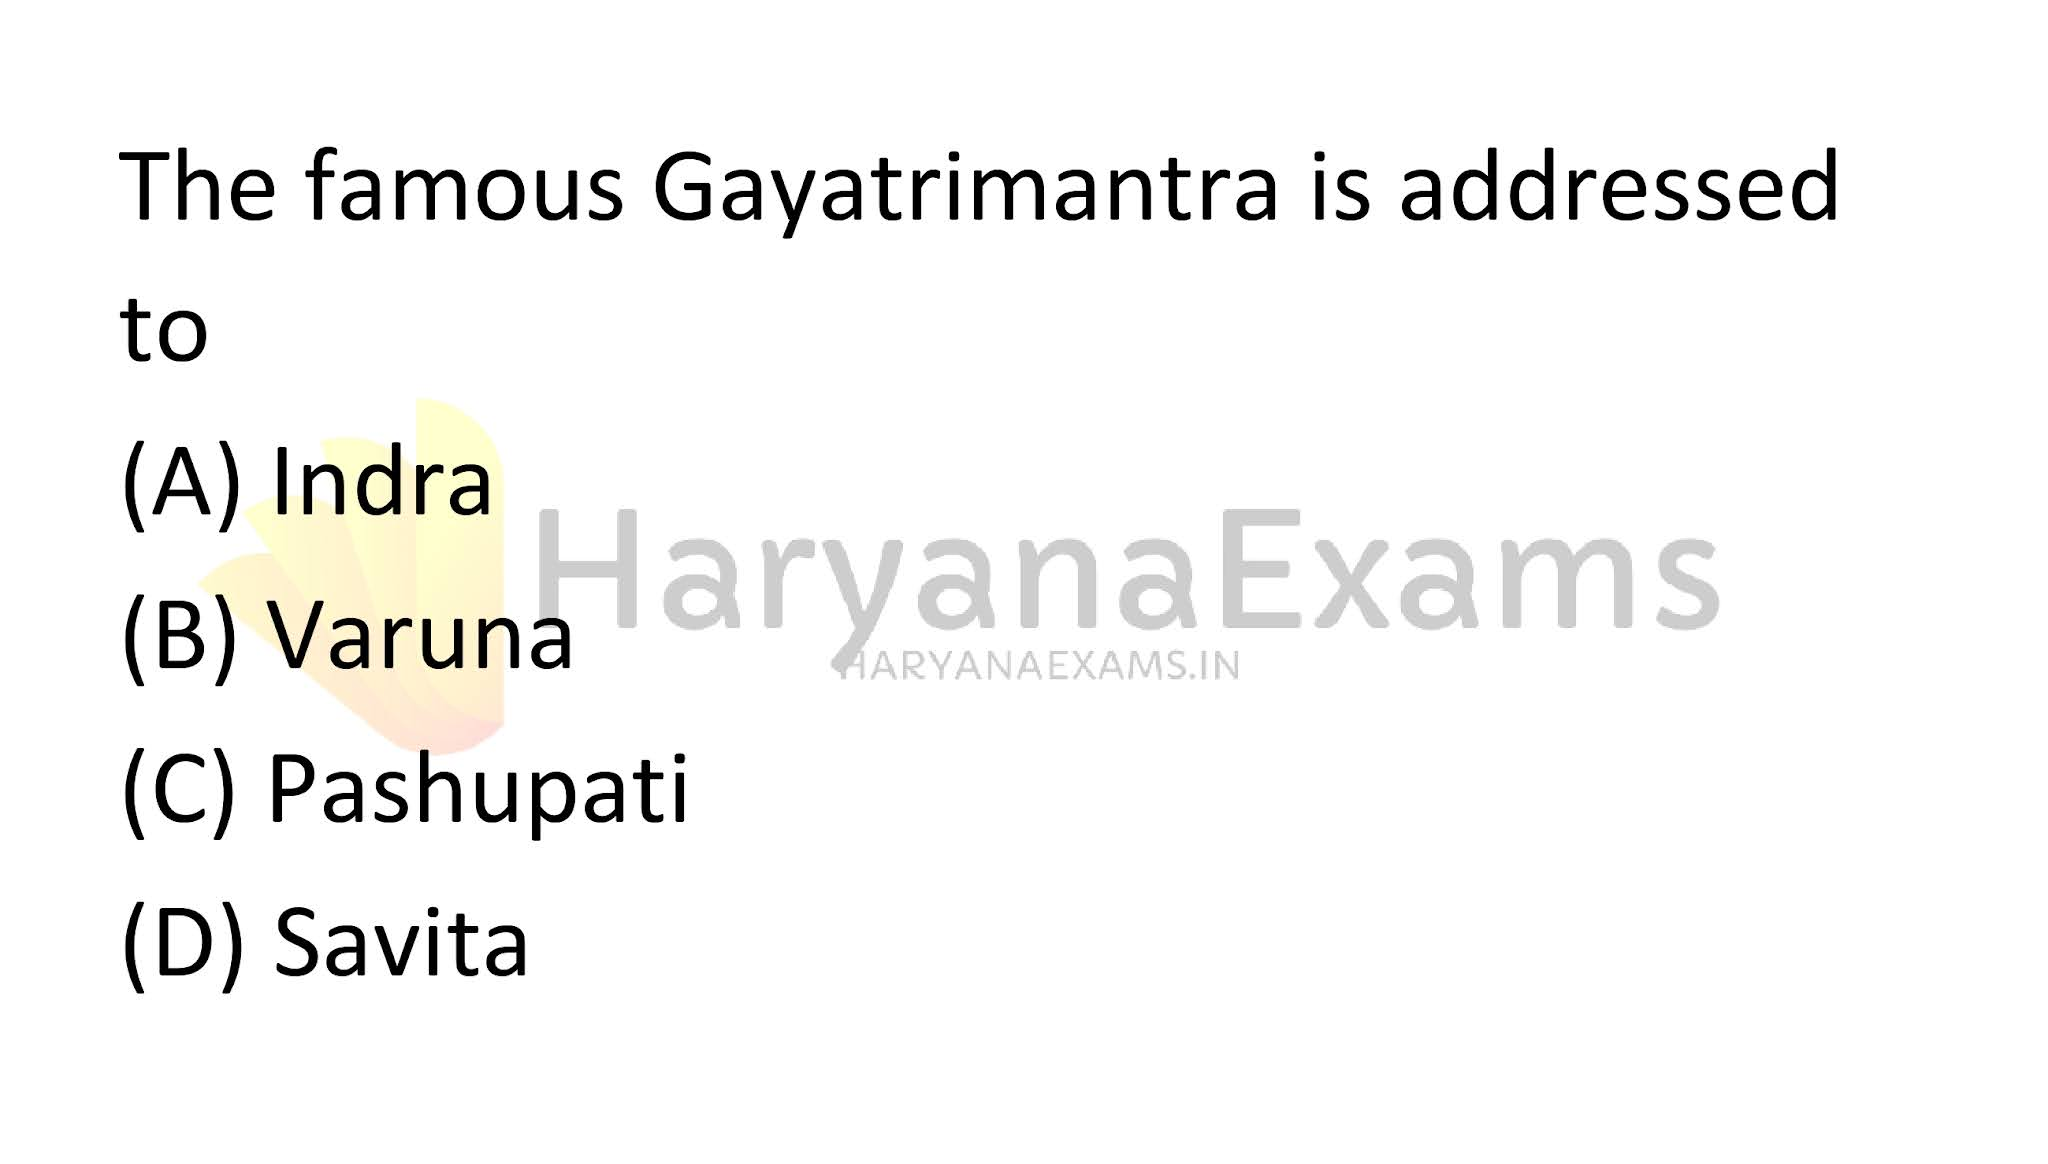 The famous Gayatri mantra is addressed to